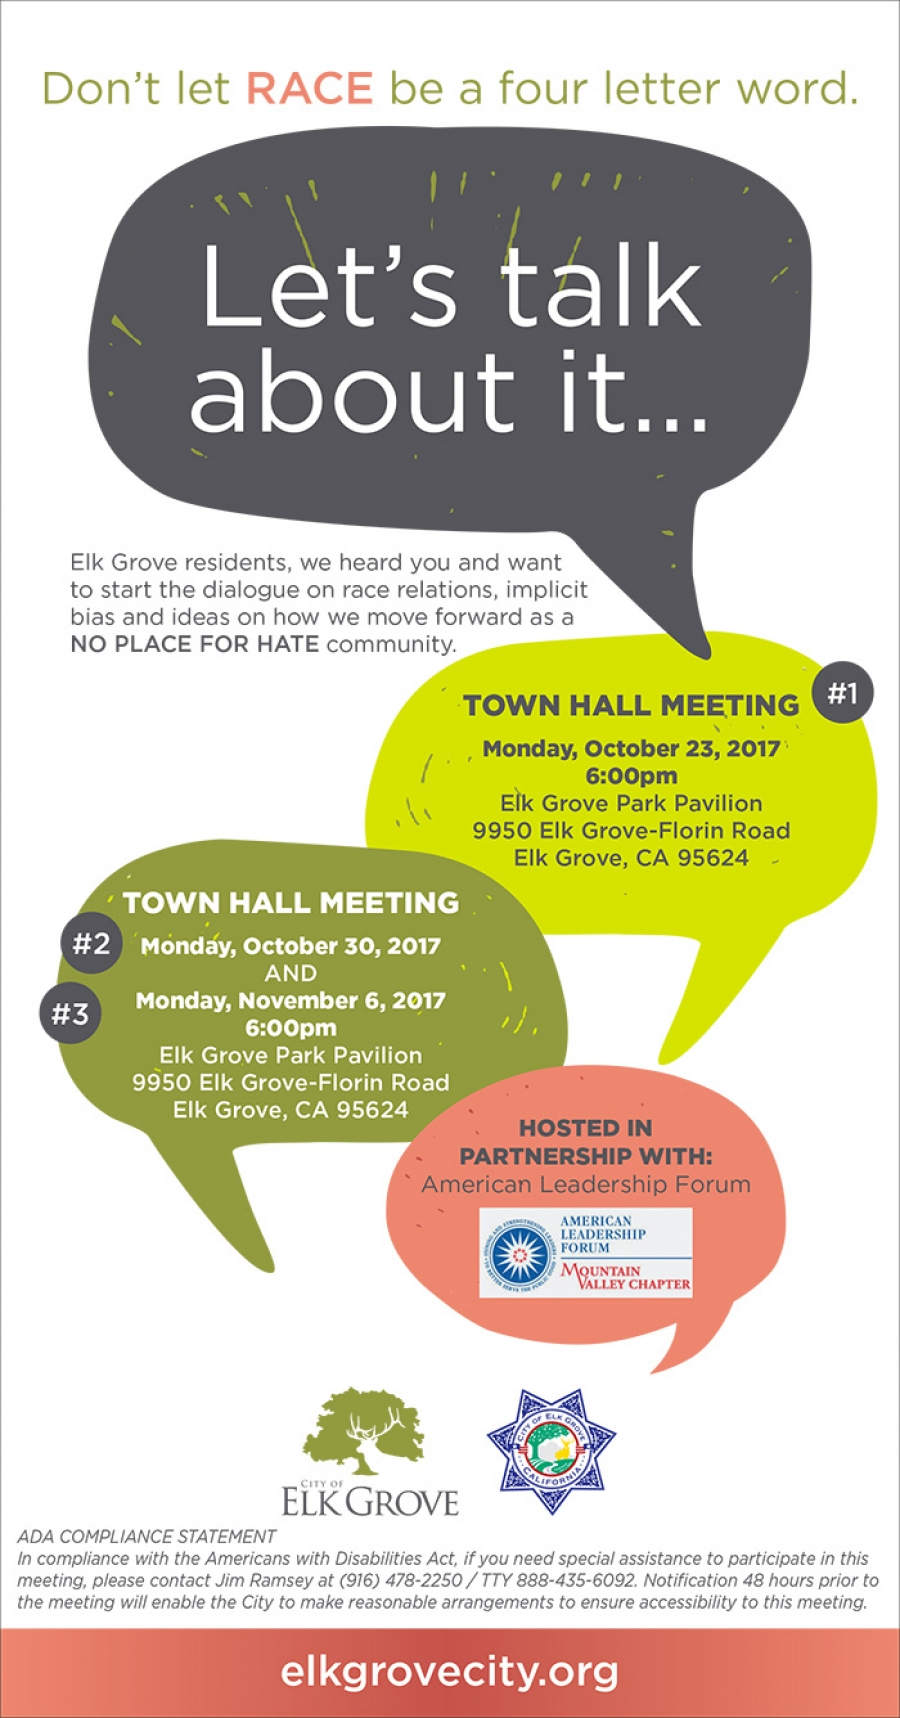 Town Hall Meeting in Elk Grove.  Don't let RACE be a four letter word - LET'S TALK ABOUT IT!